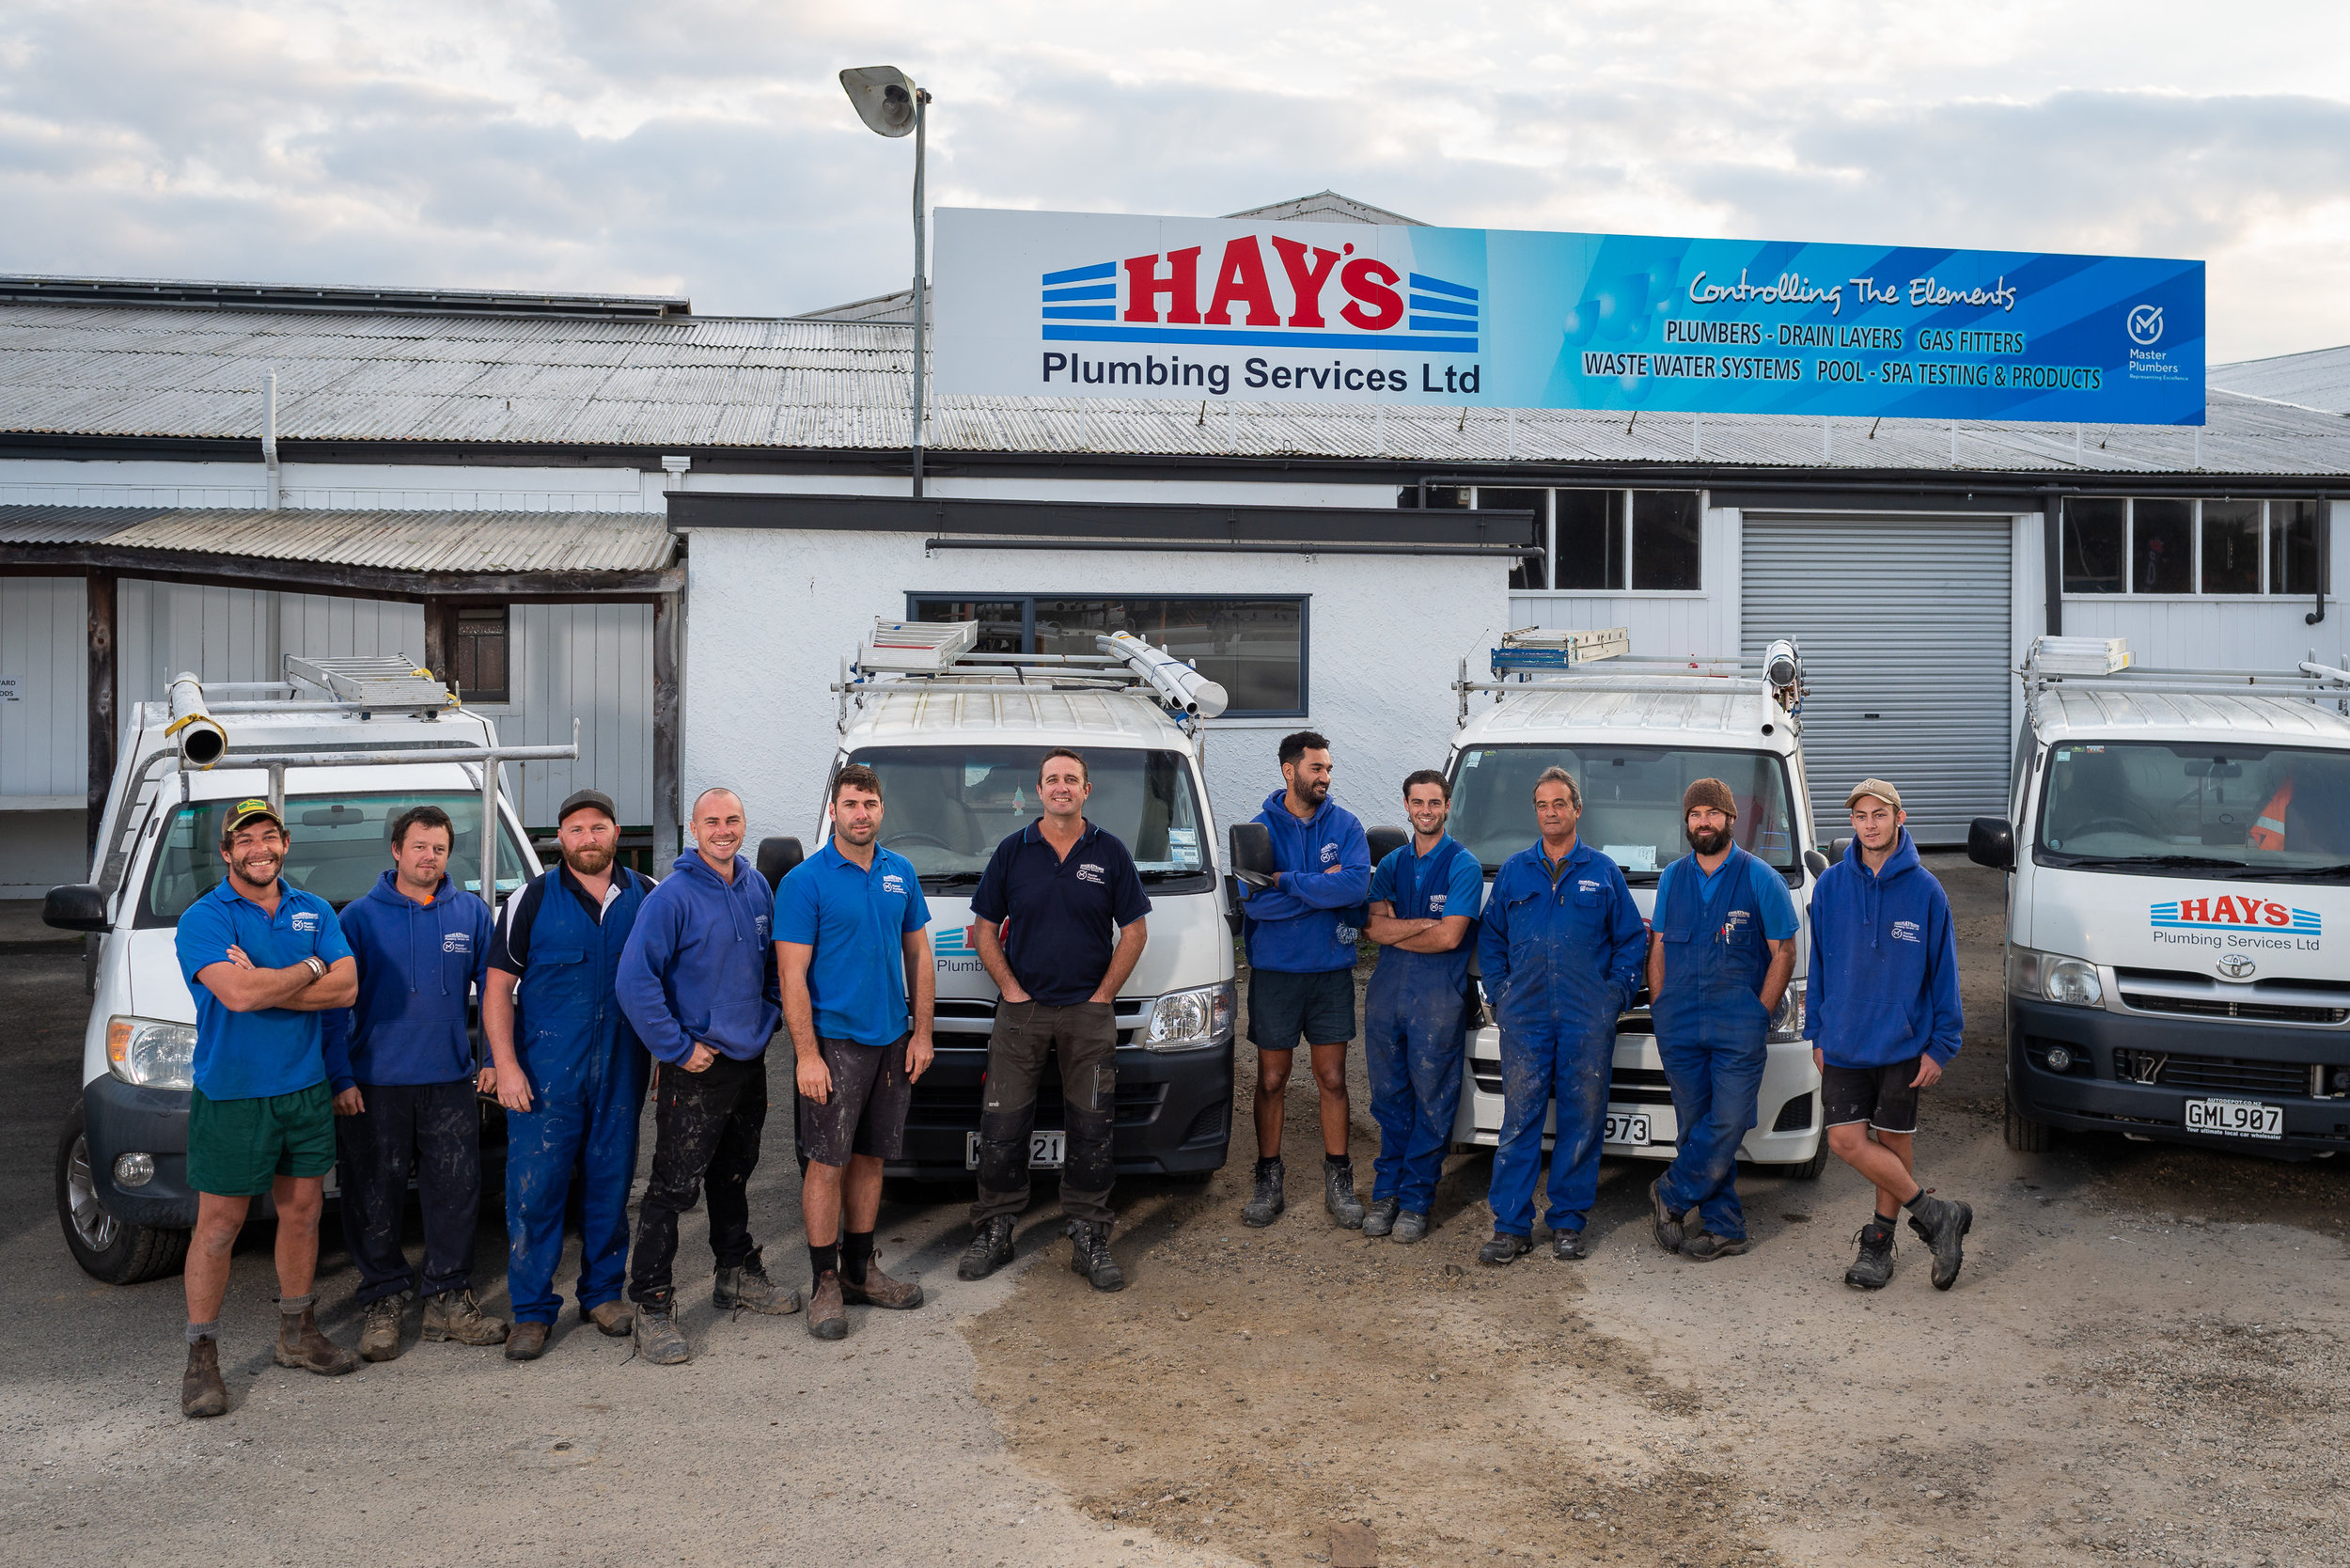 About - Our Motueka based plumbing team are experts in plumbing. We cover the full range of plumbing services, from emergency call-outs, renovating, building new, central heating, or simple repairs and maintenance.24 hour call-out available